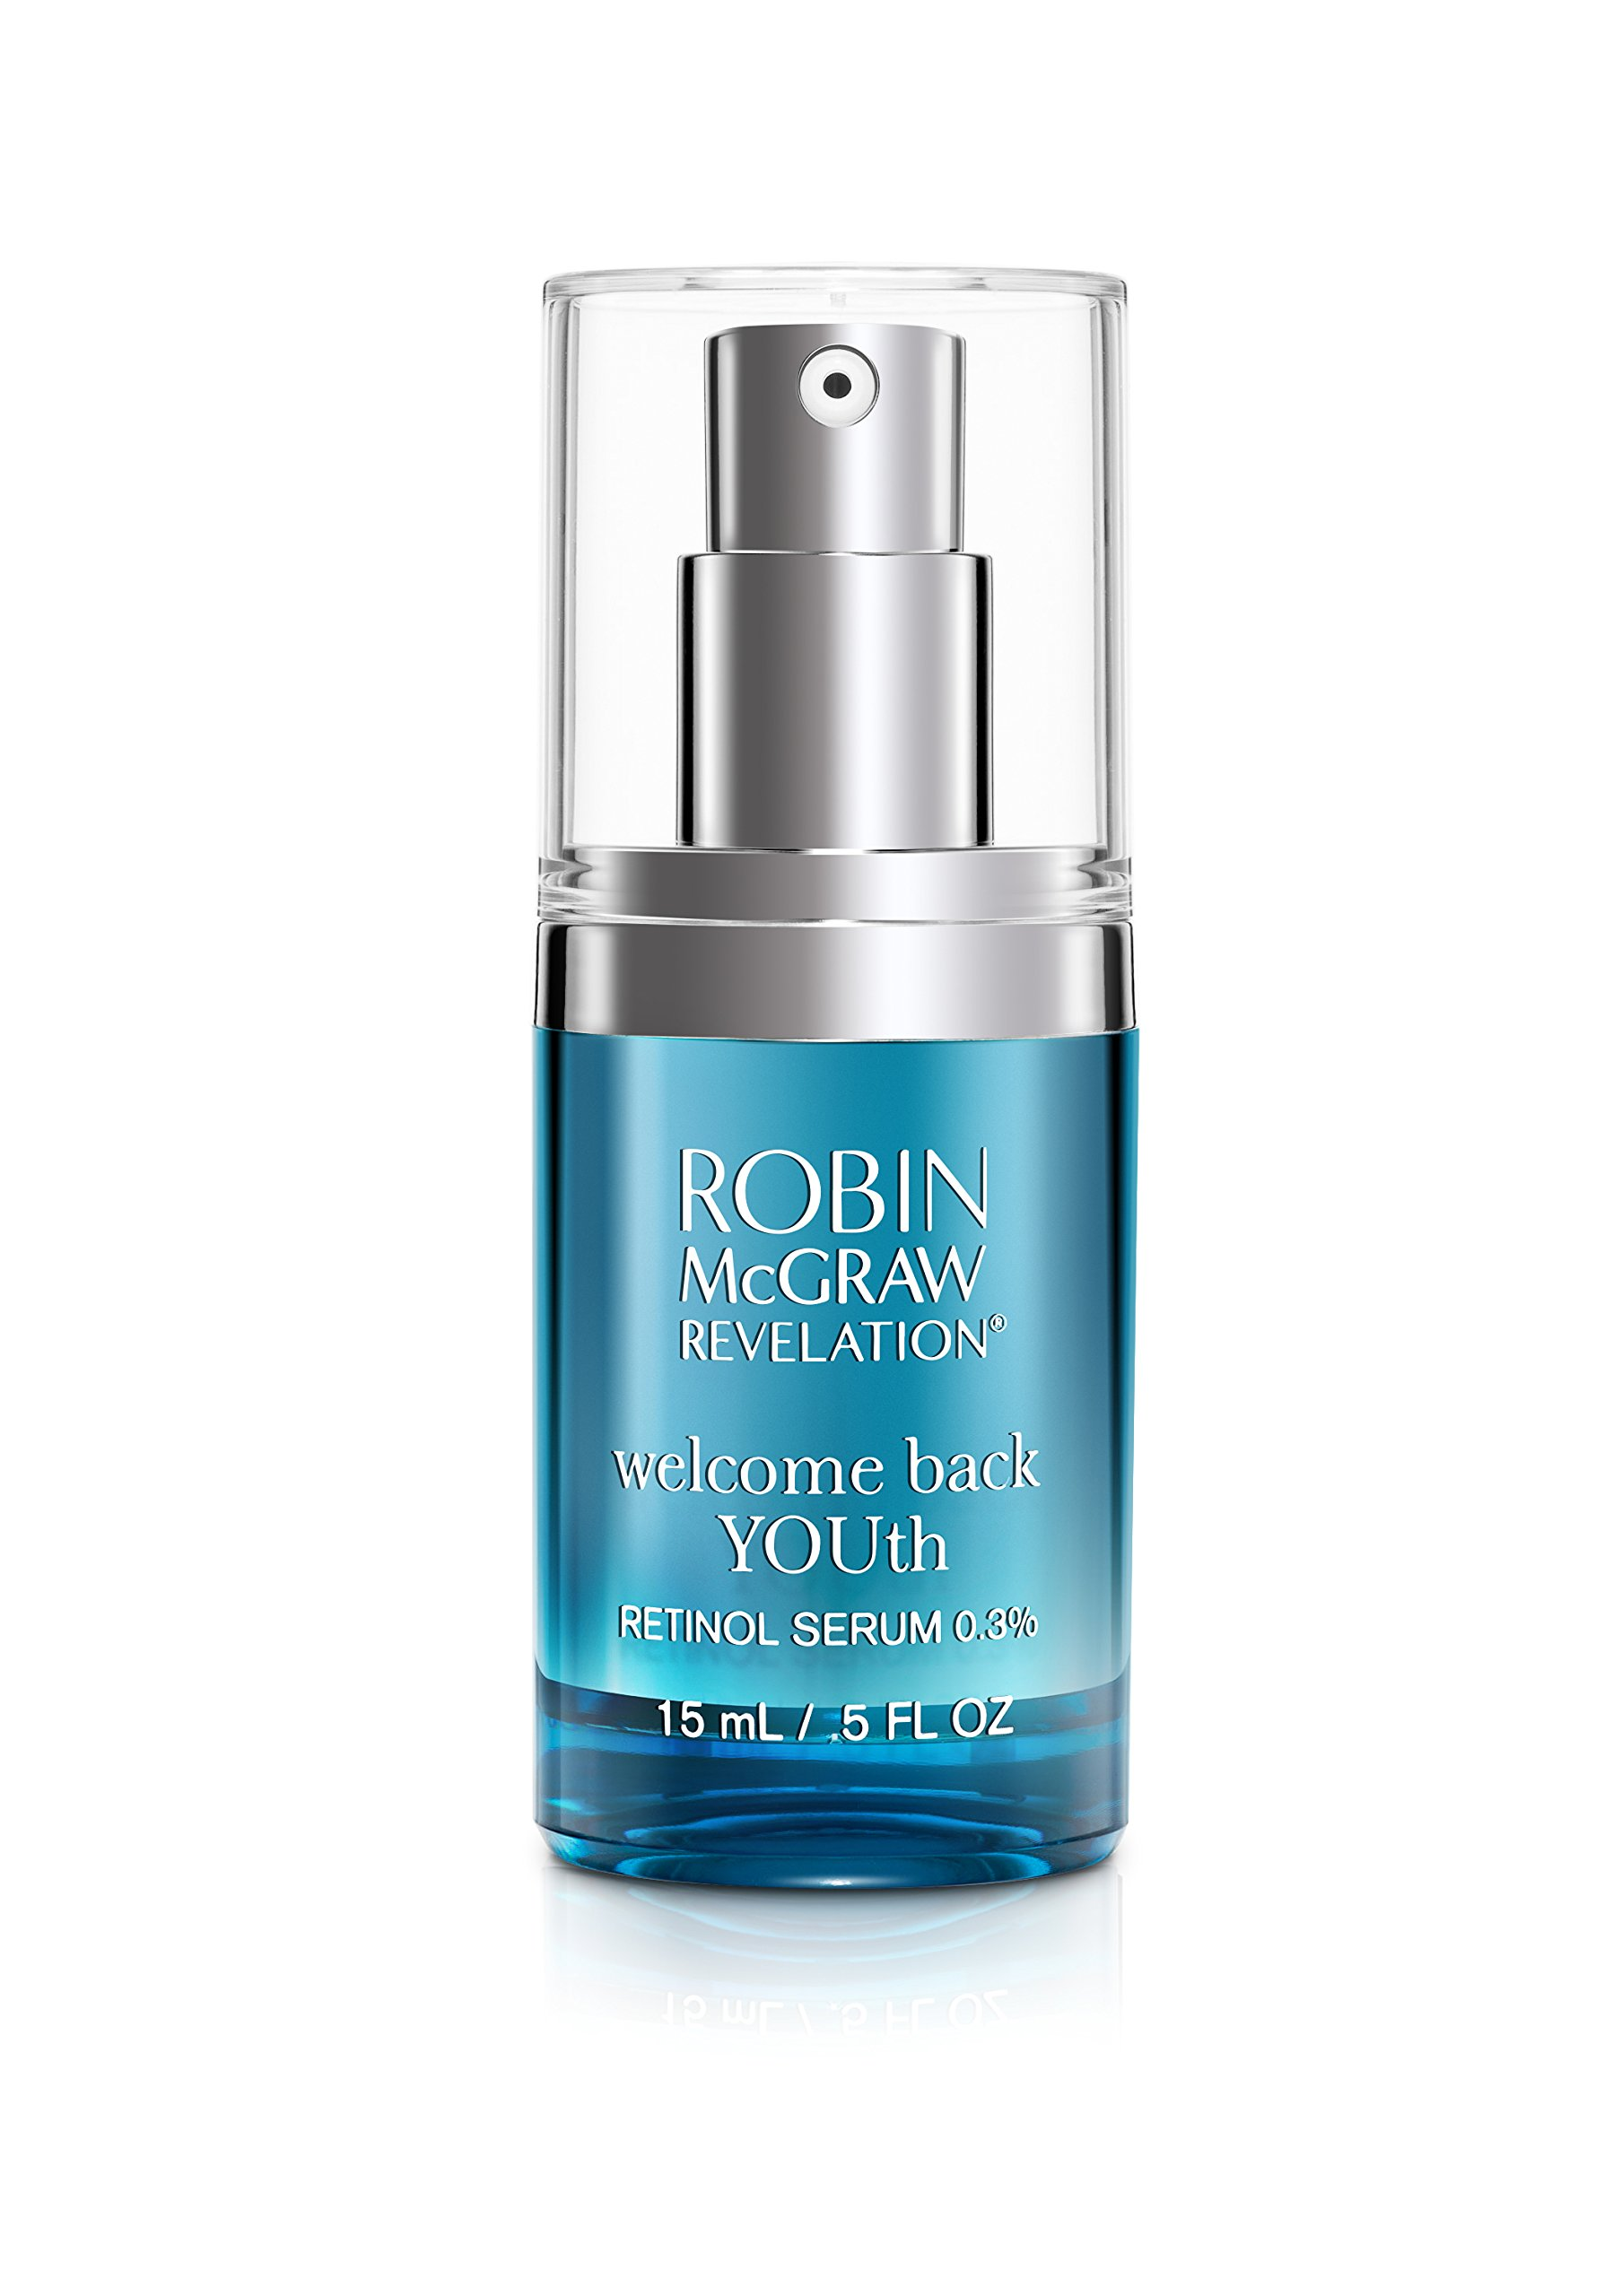 Robin McGraw Revelation Welcome Back YOUth - Retinol Serum 0.3%, 0.5 fl. oz by Robin McGraw Revelation